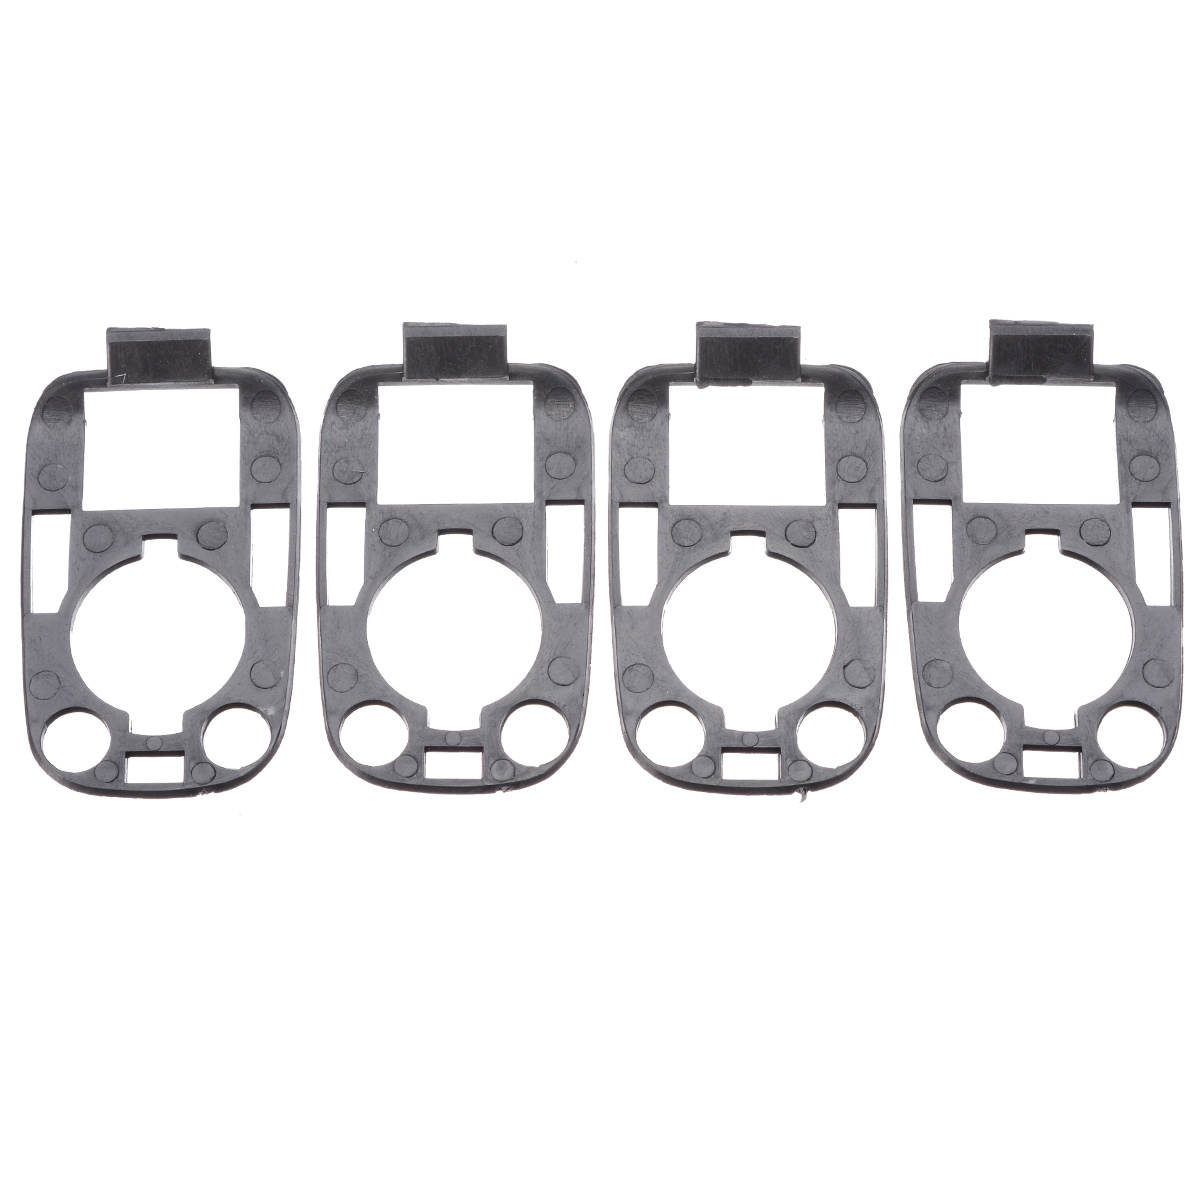 MOTORCYCLE SEAT STRAP BUCKLES END CAPS  KIT NEW